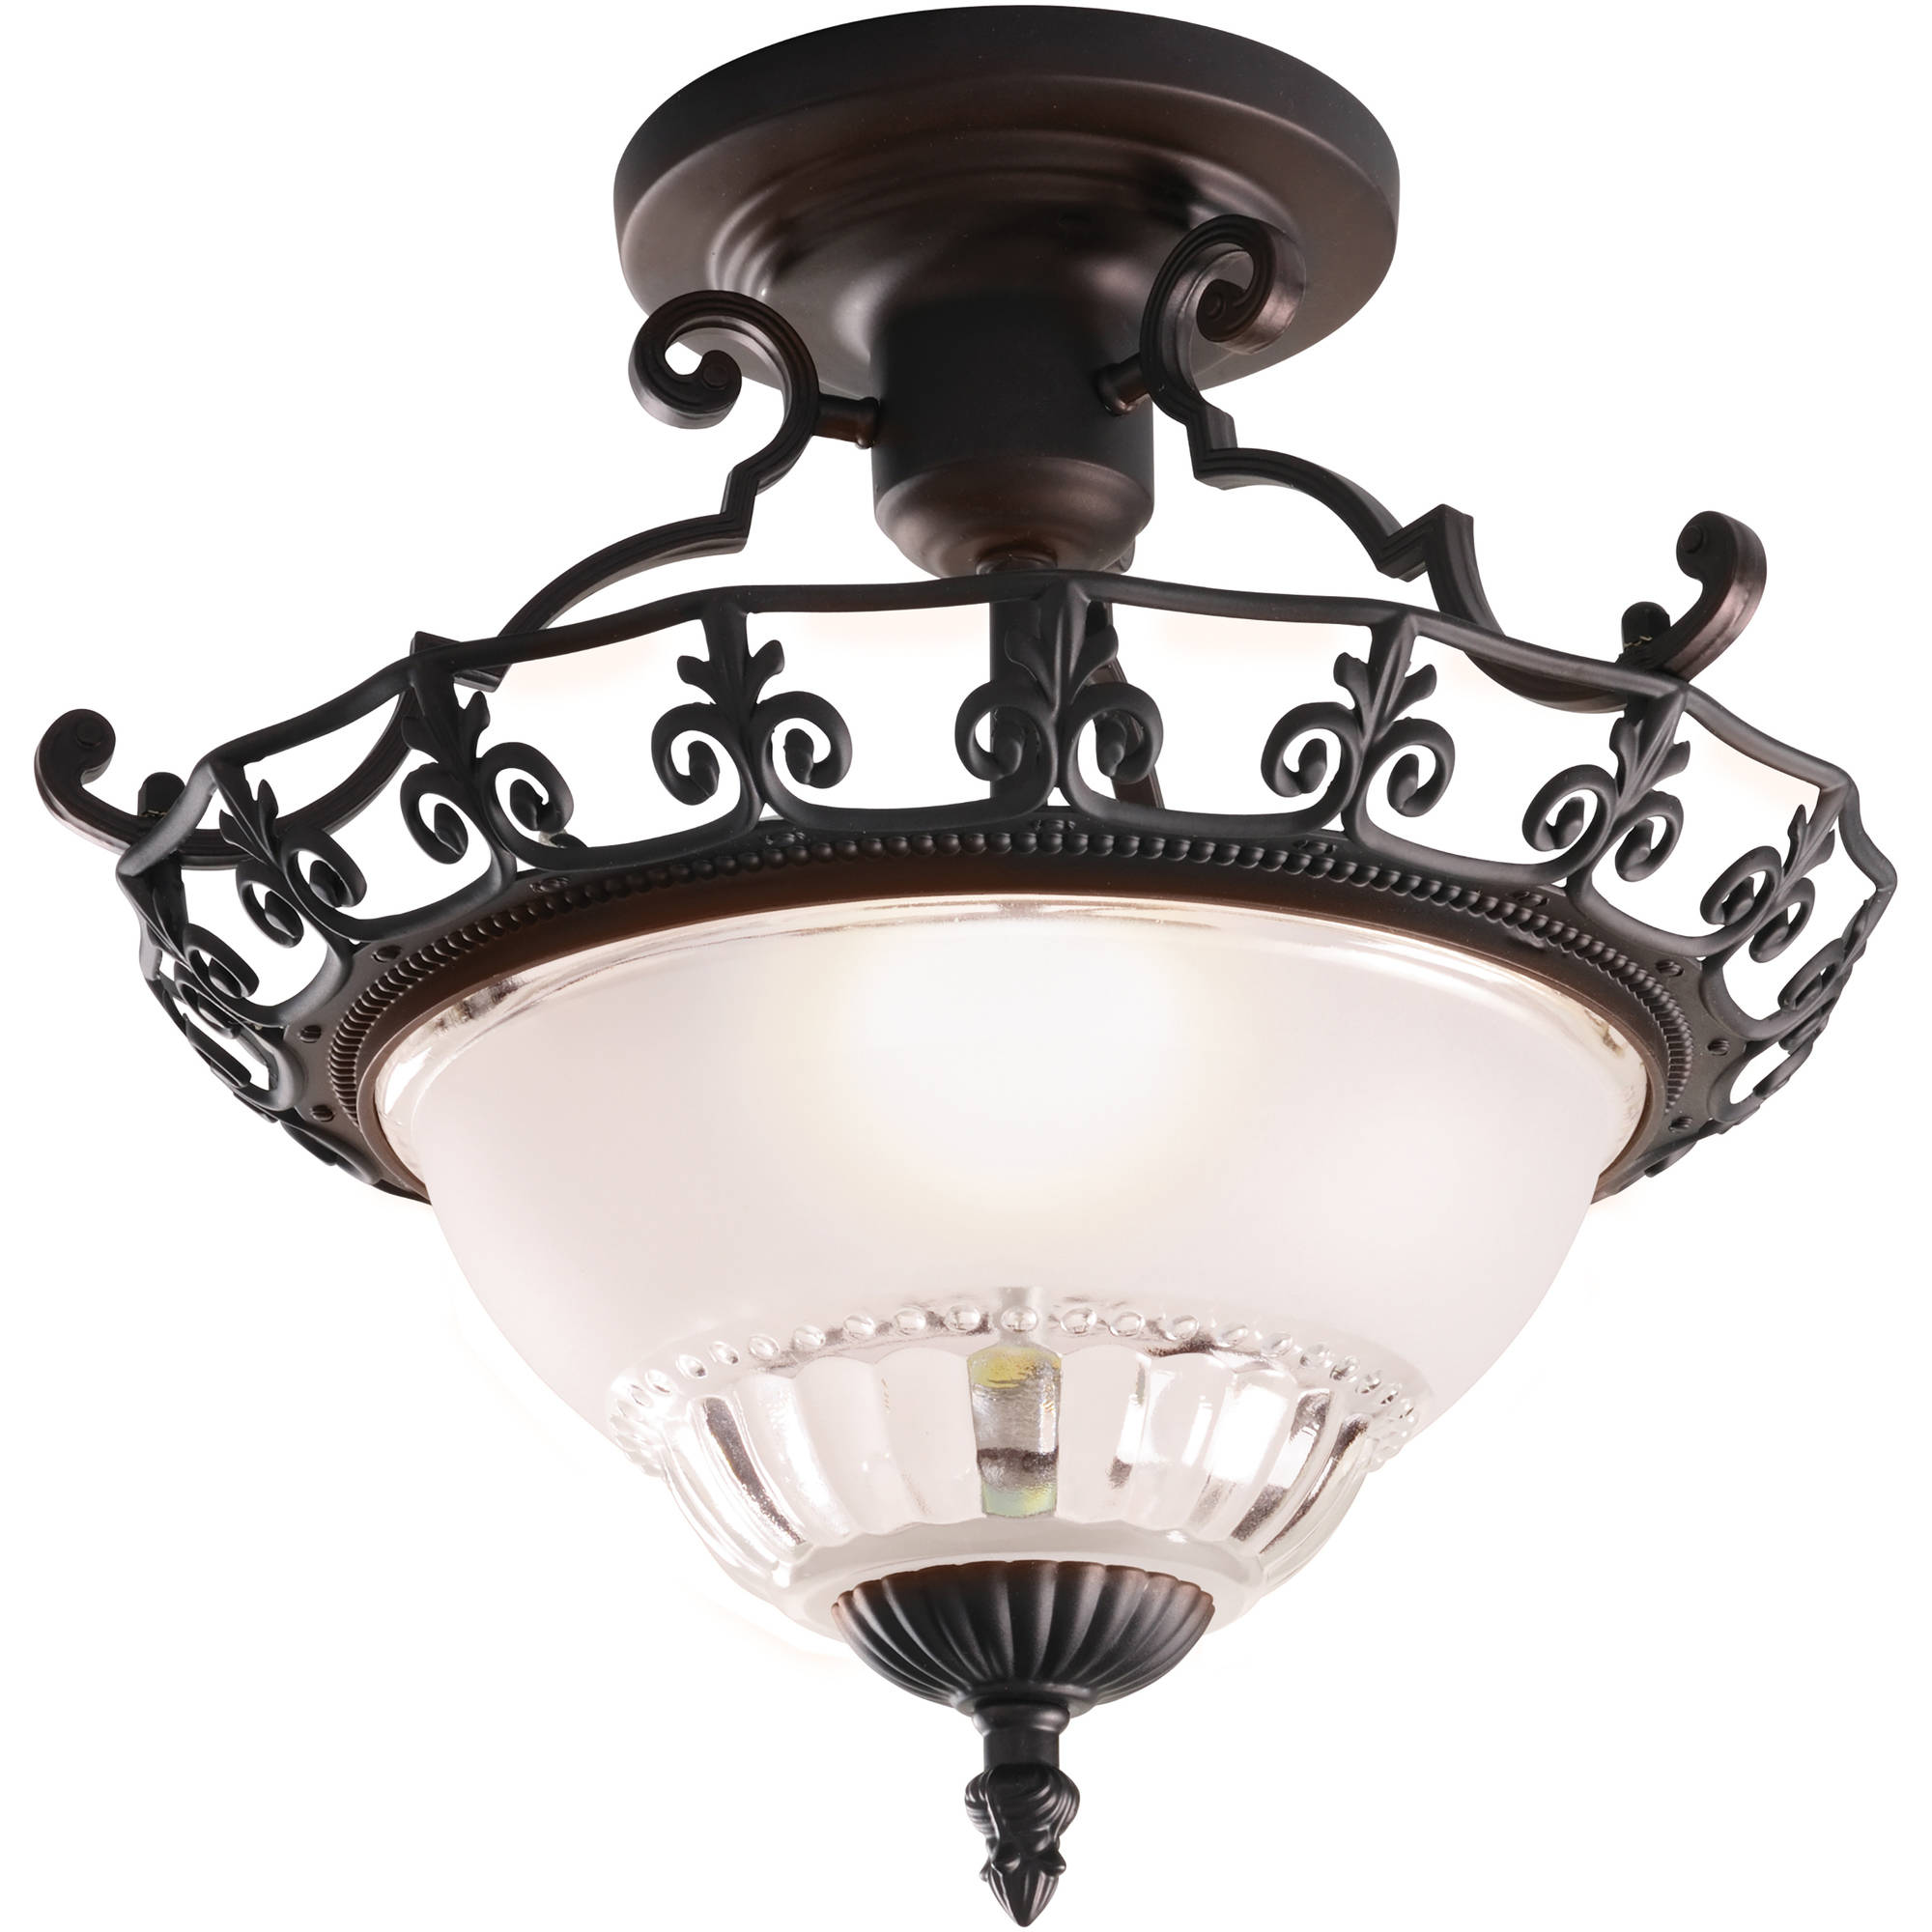 "Chapter Indoor 11.25"" Ceiling Semi-Flush Mount, Oil-Rubbed Bronze"